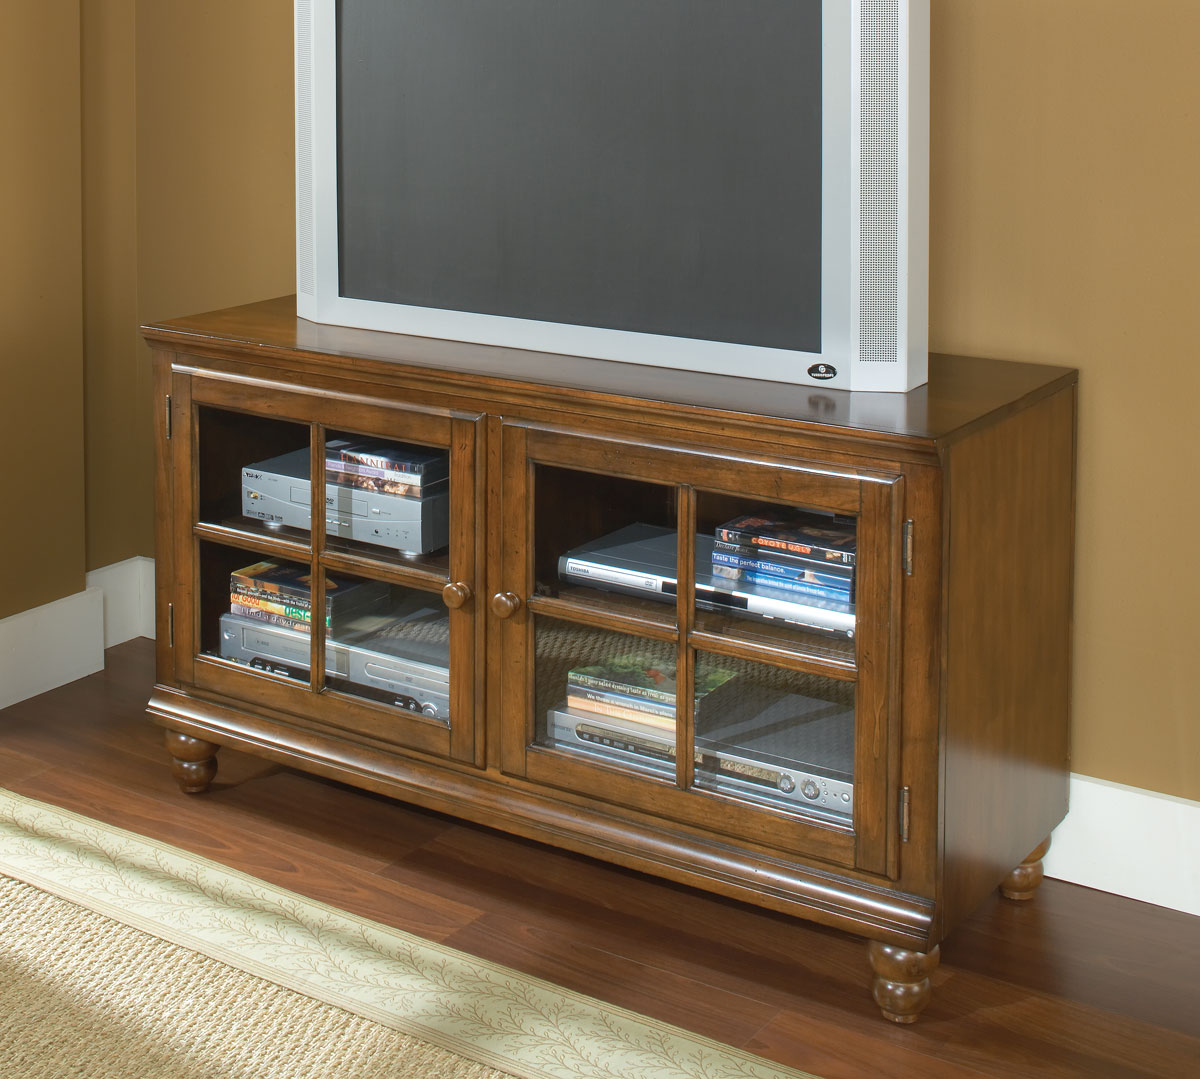 Hillsdale Grand Bay 48in Entertainment Console - Warm Brown